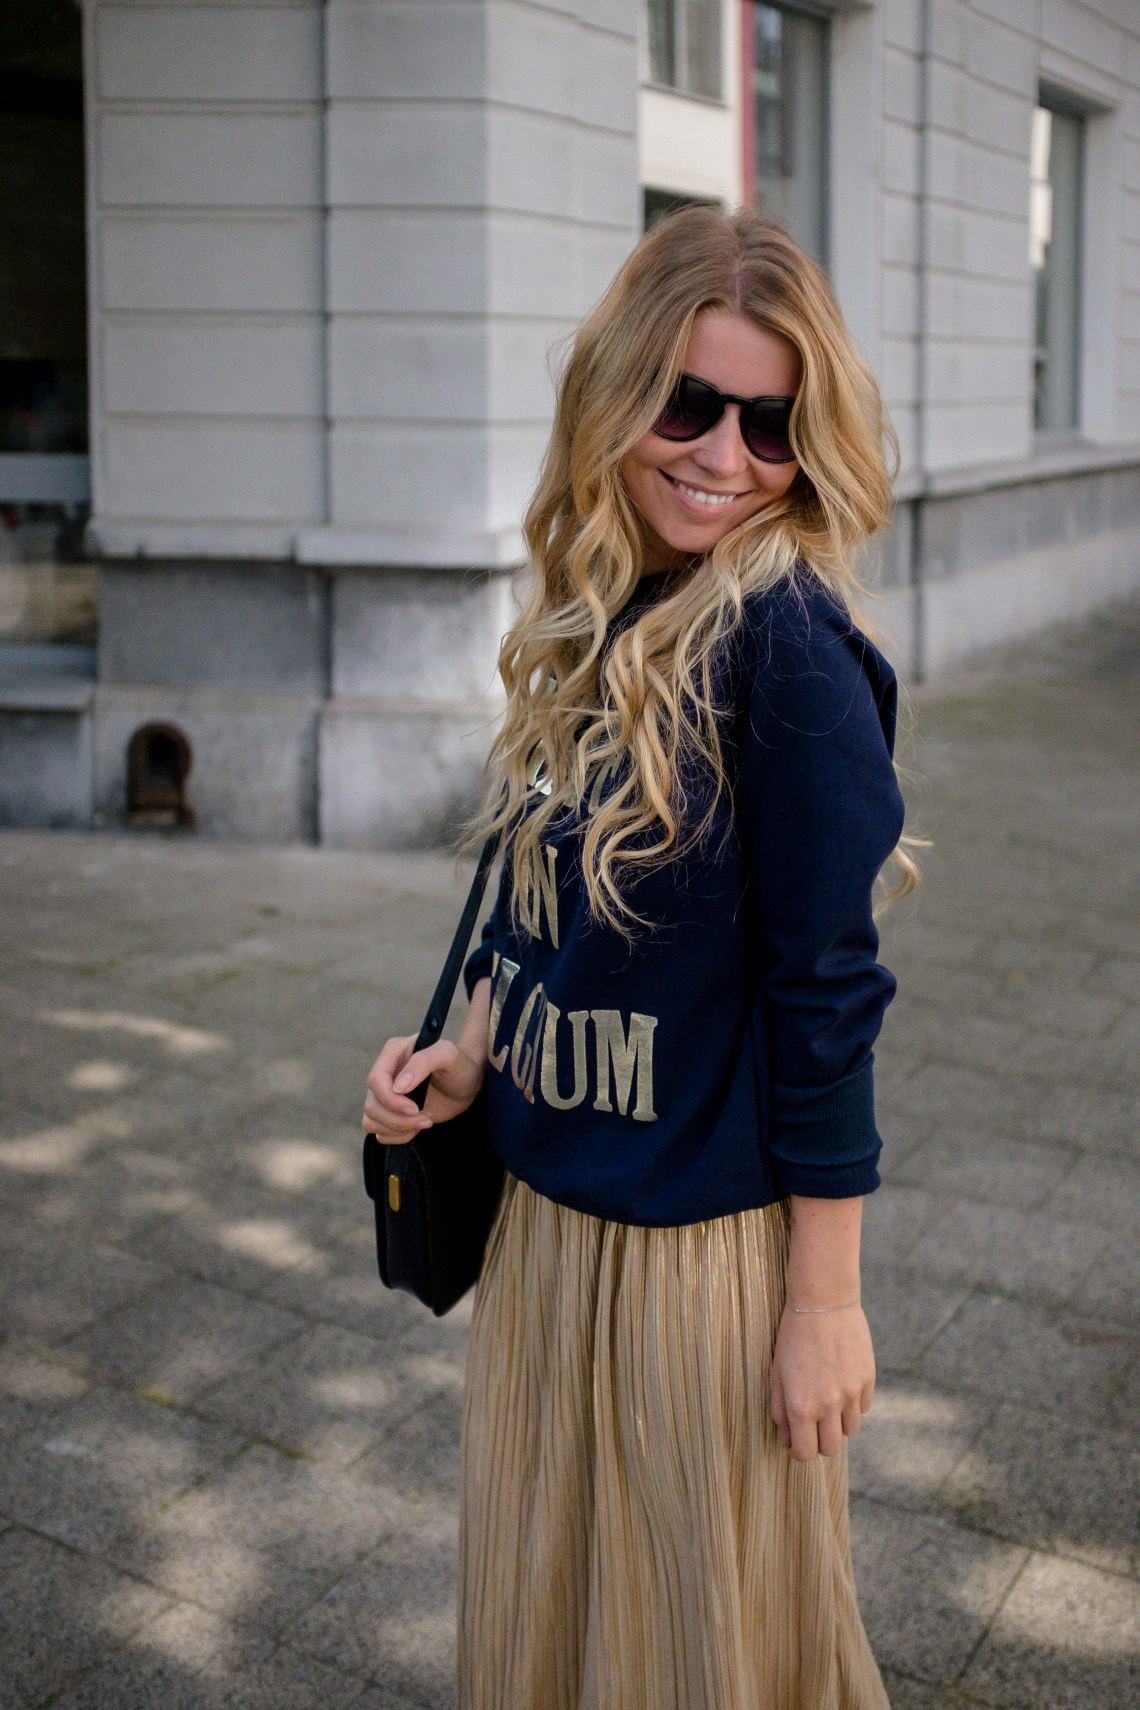 dogs-and-dresses-elien-migalski-streetstyle-outfit-18